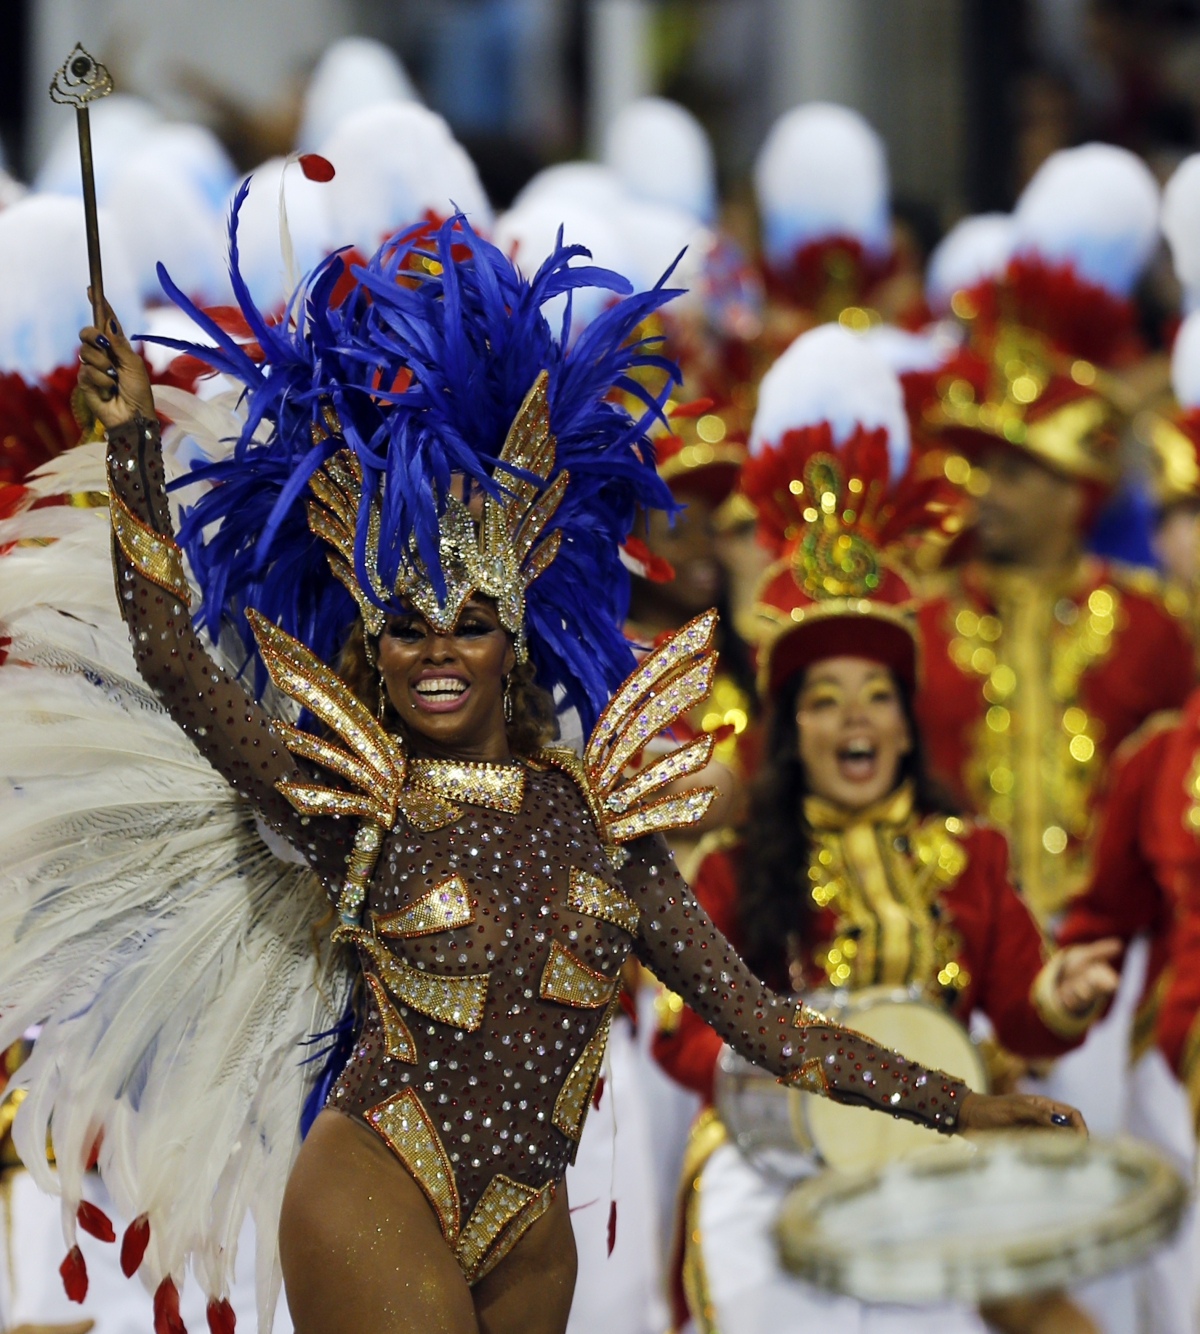 Revellers from the Perola Negra samba school take part in the Special Group category of the annual Carnival parade in Sao Paulo's Sambadrome March 1, 2014.